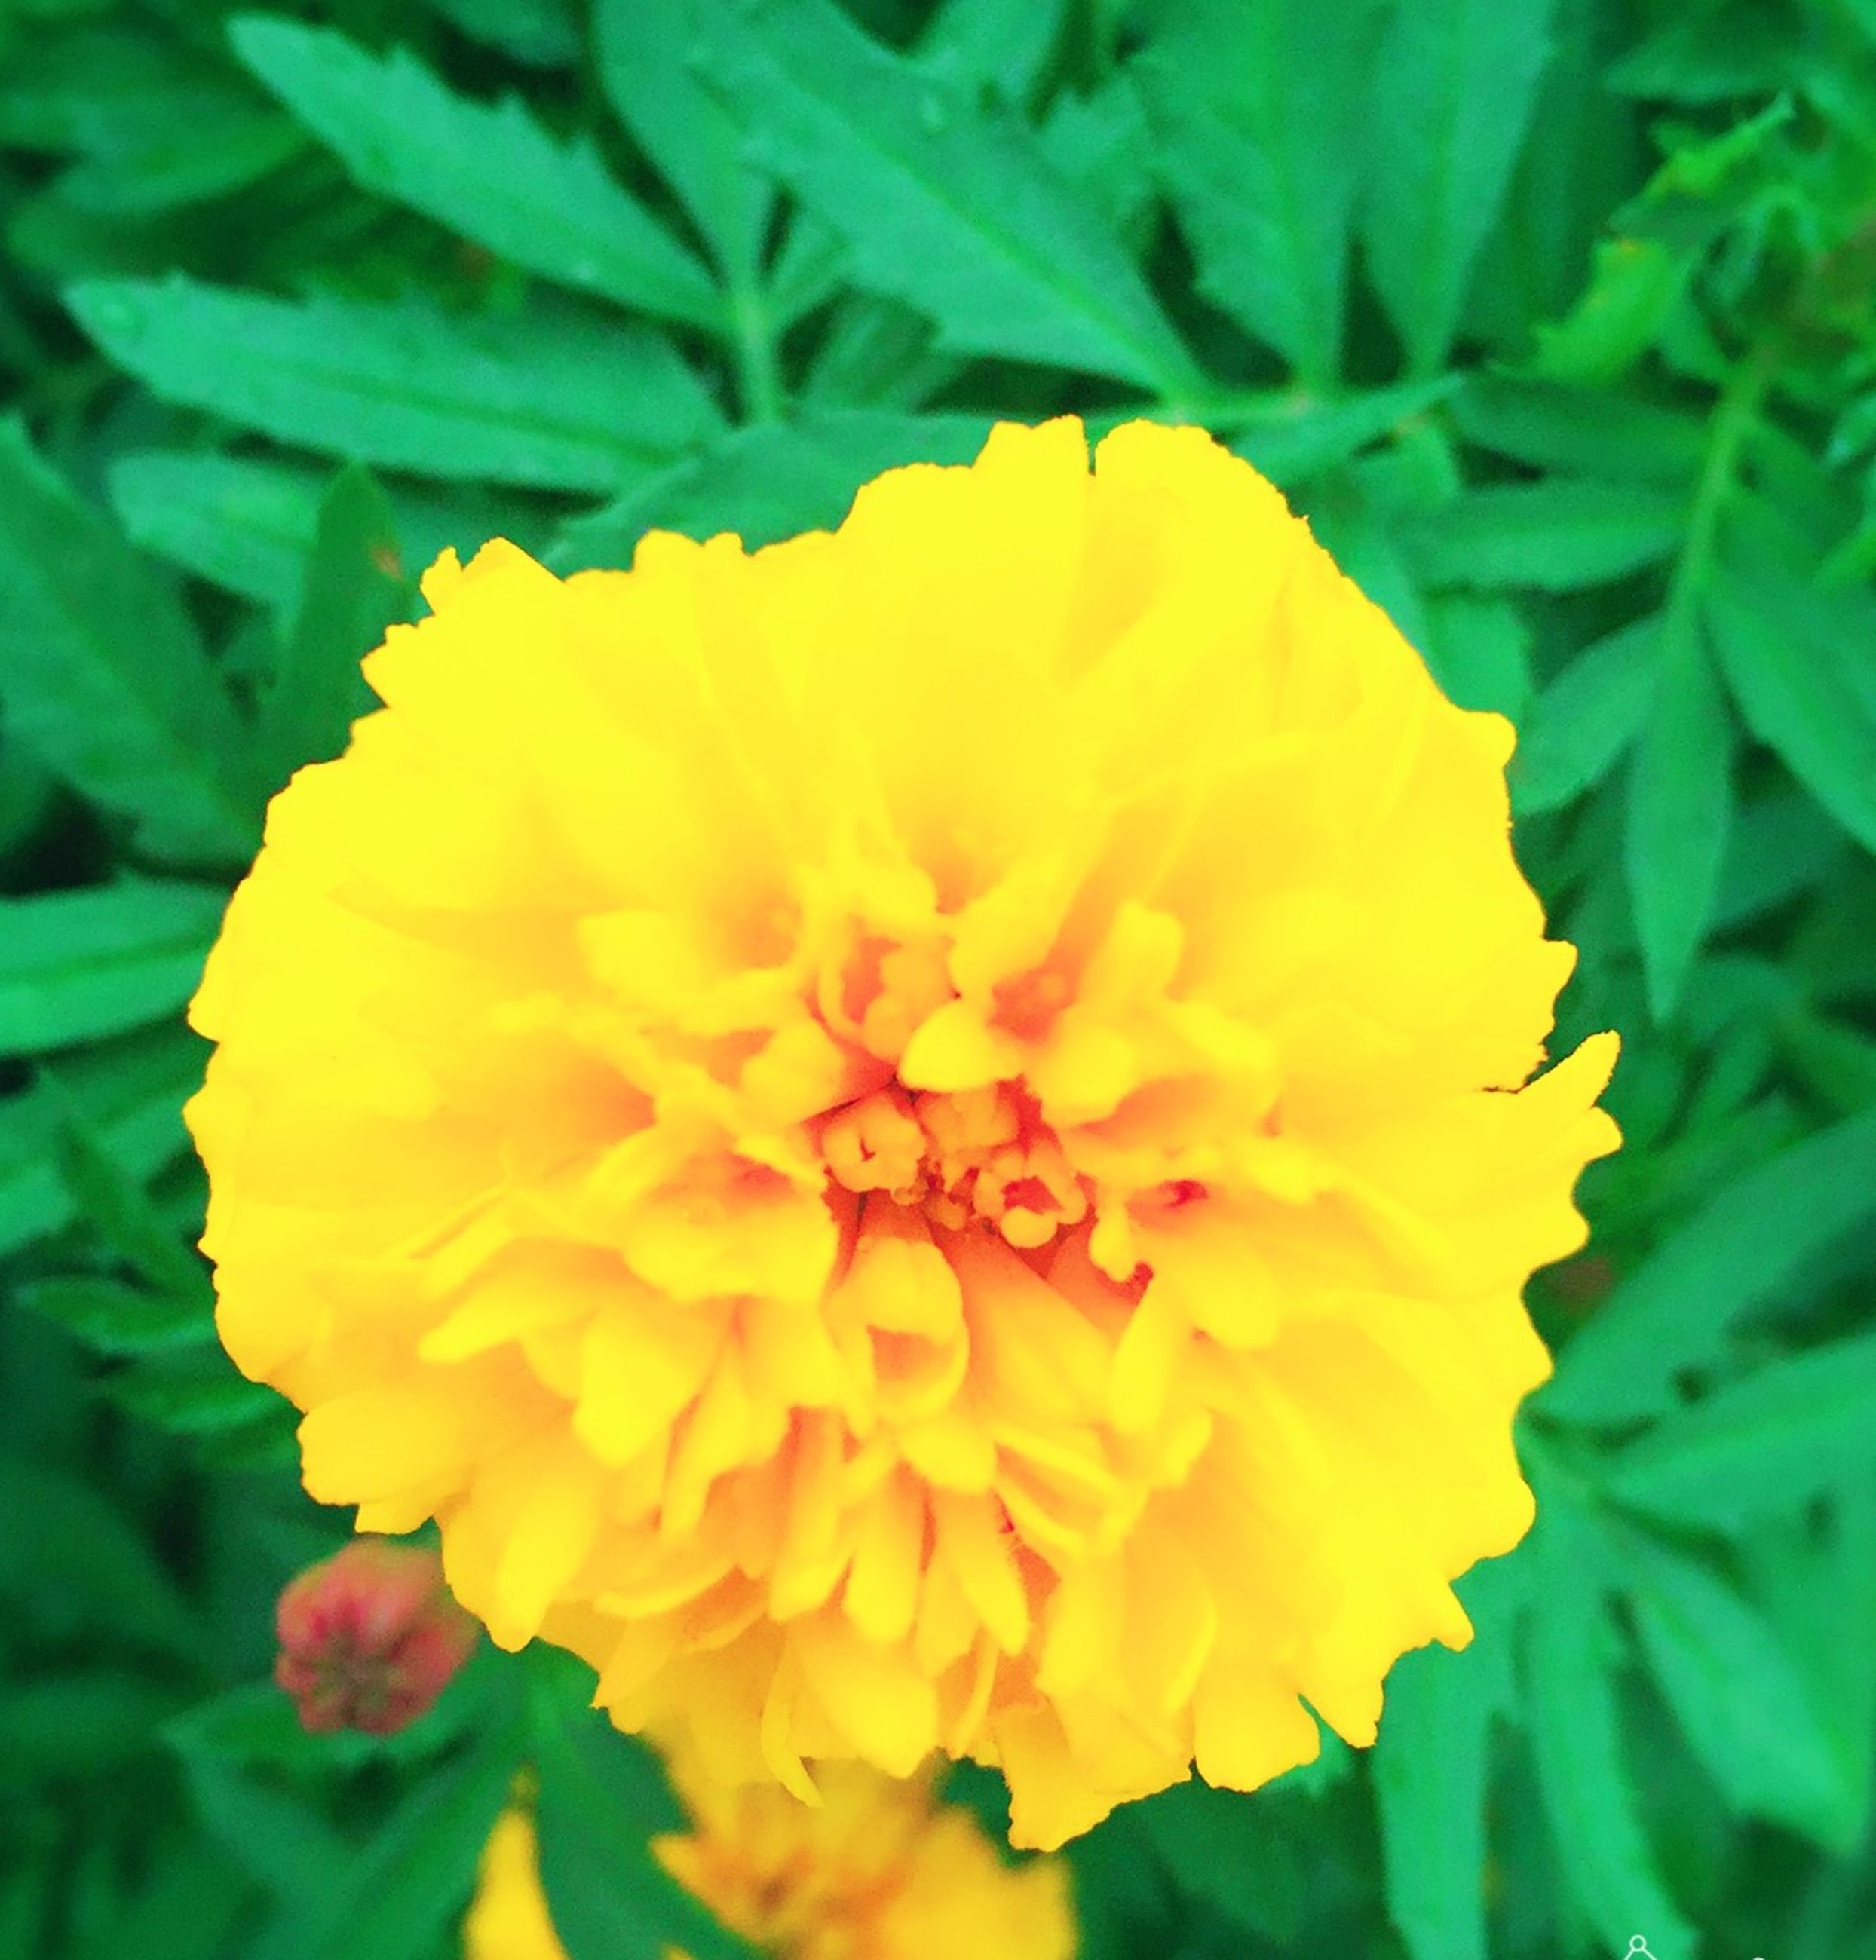 flower, freshness, flower head, petal, growth, fragility, beauty in nature, single flower, close-up, nature, yellow, plant, blooming, pollen, leaf, in bloom, blossom, focus on foreground, stamen, botany